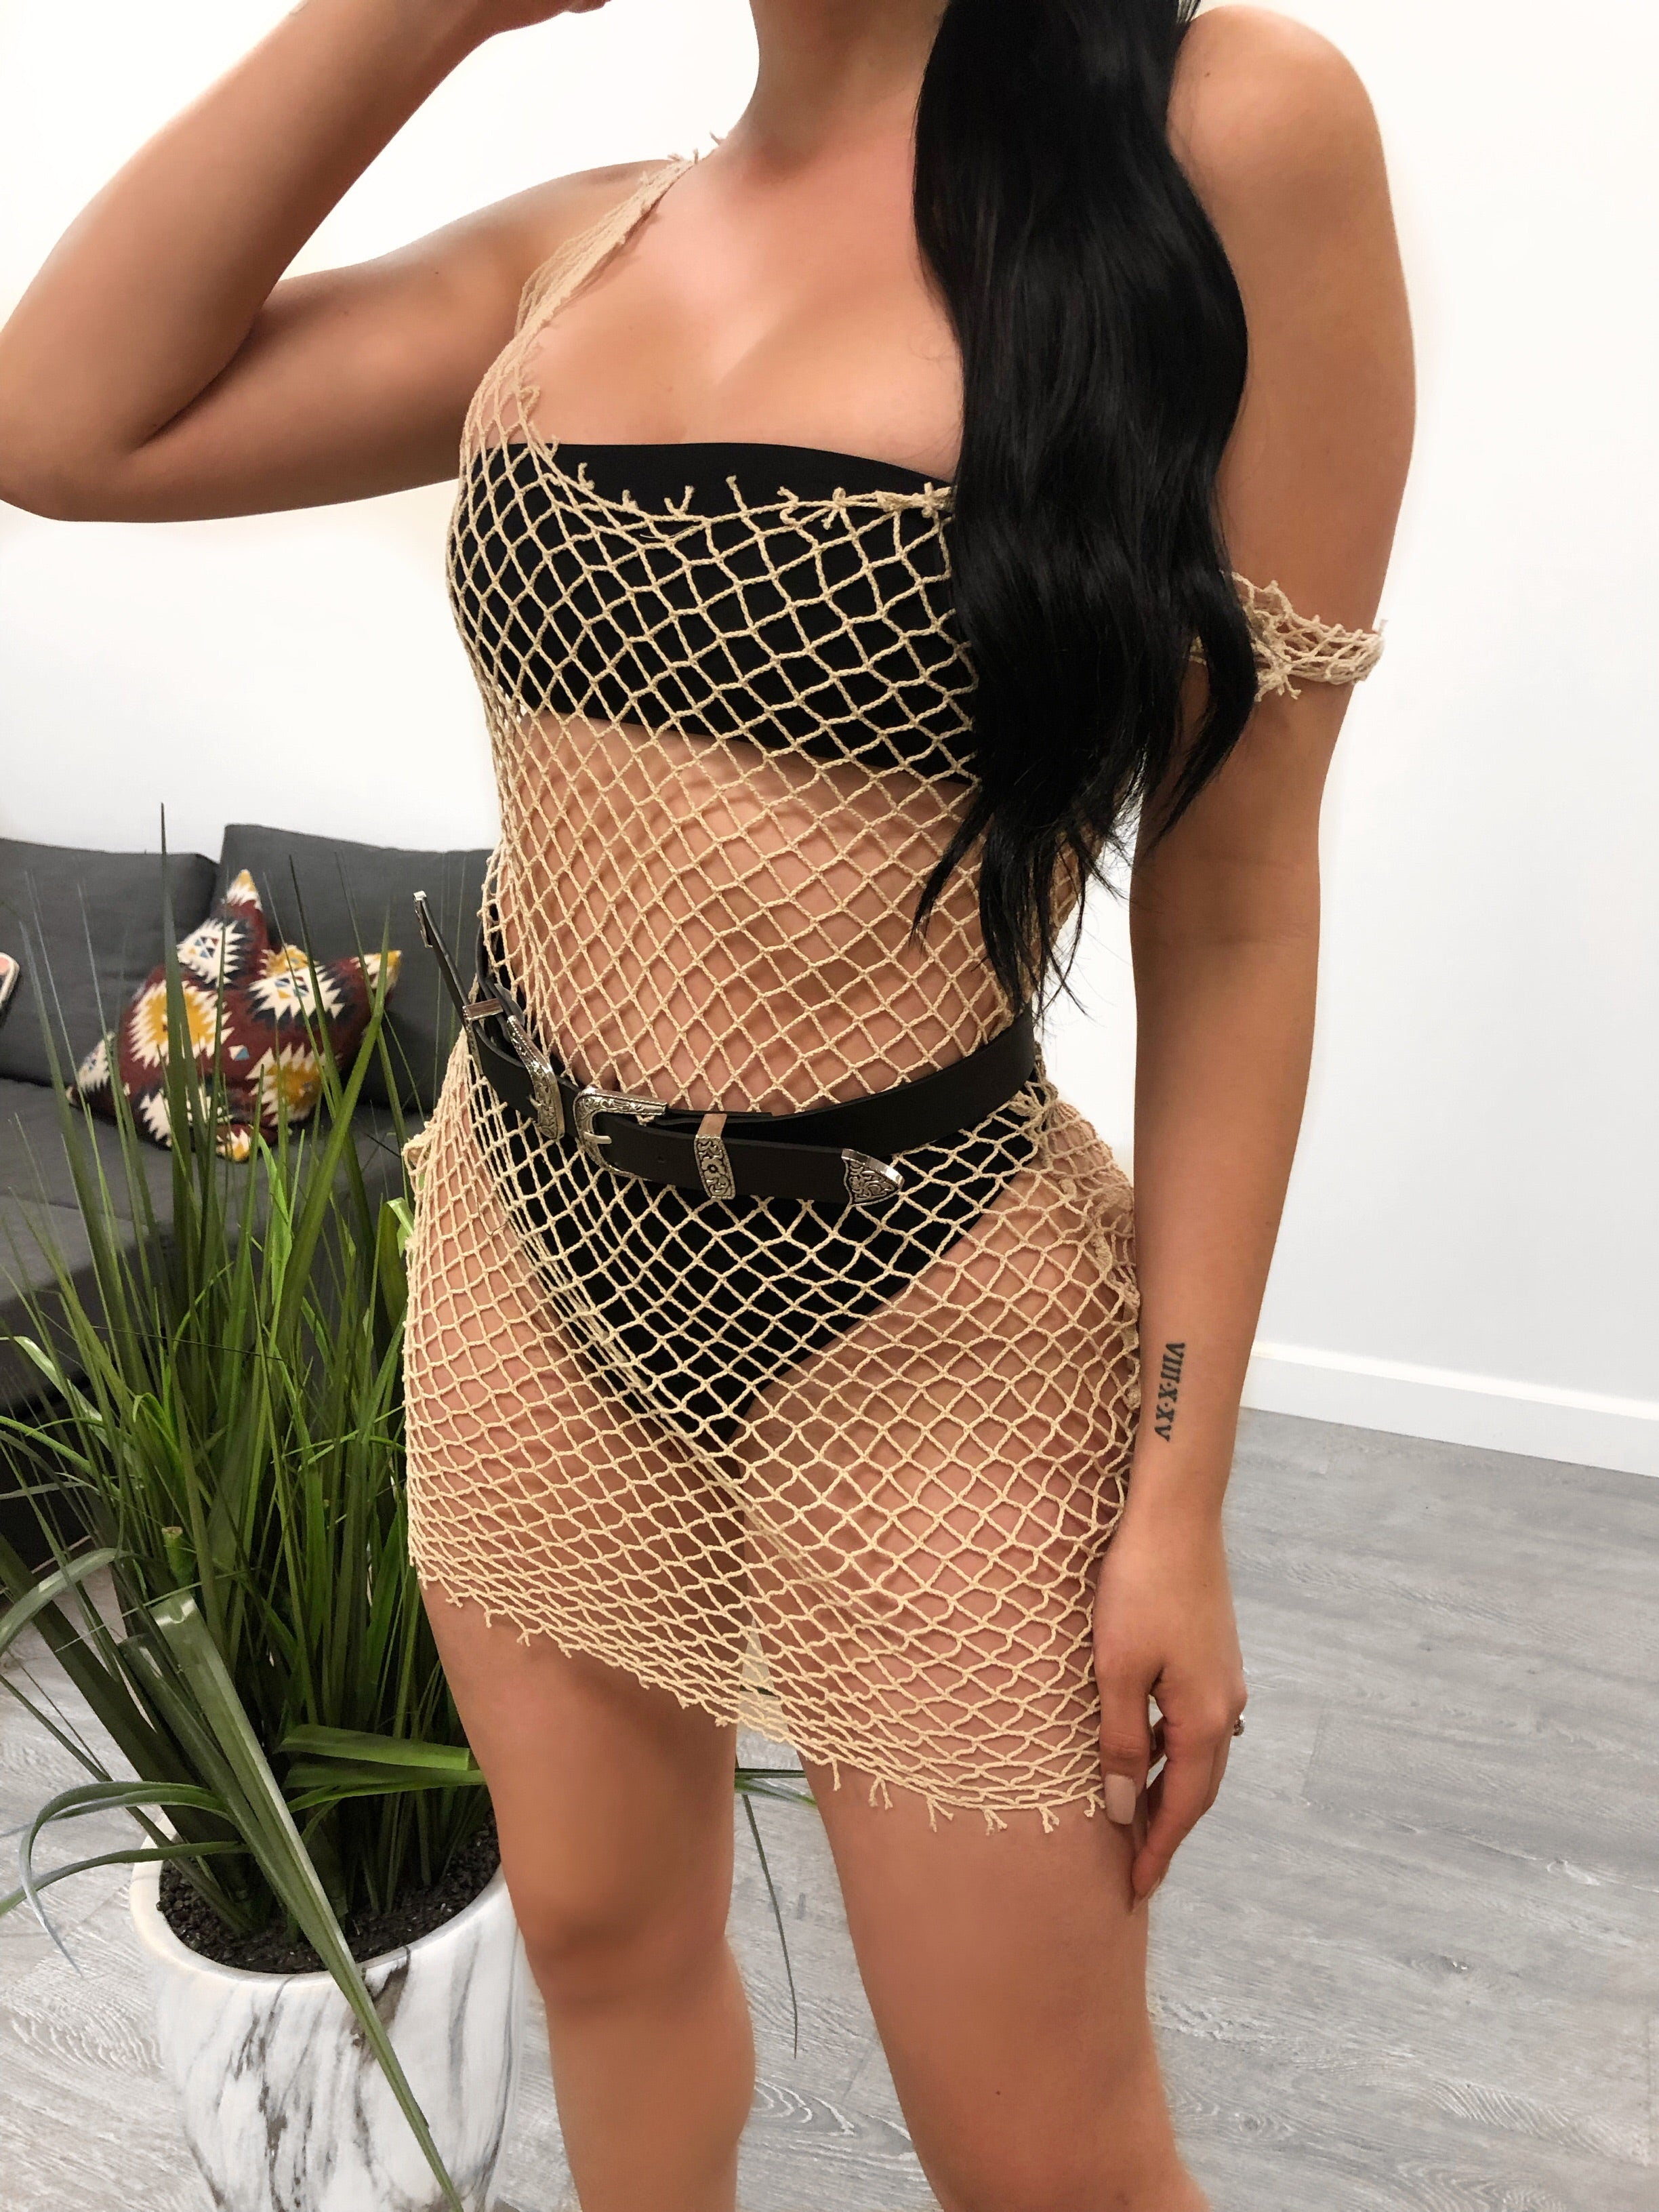 tan fishnet wide u shape cover up dress. dress is to be worn over bathing suit. dress length is to mid thigh